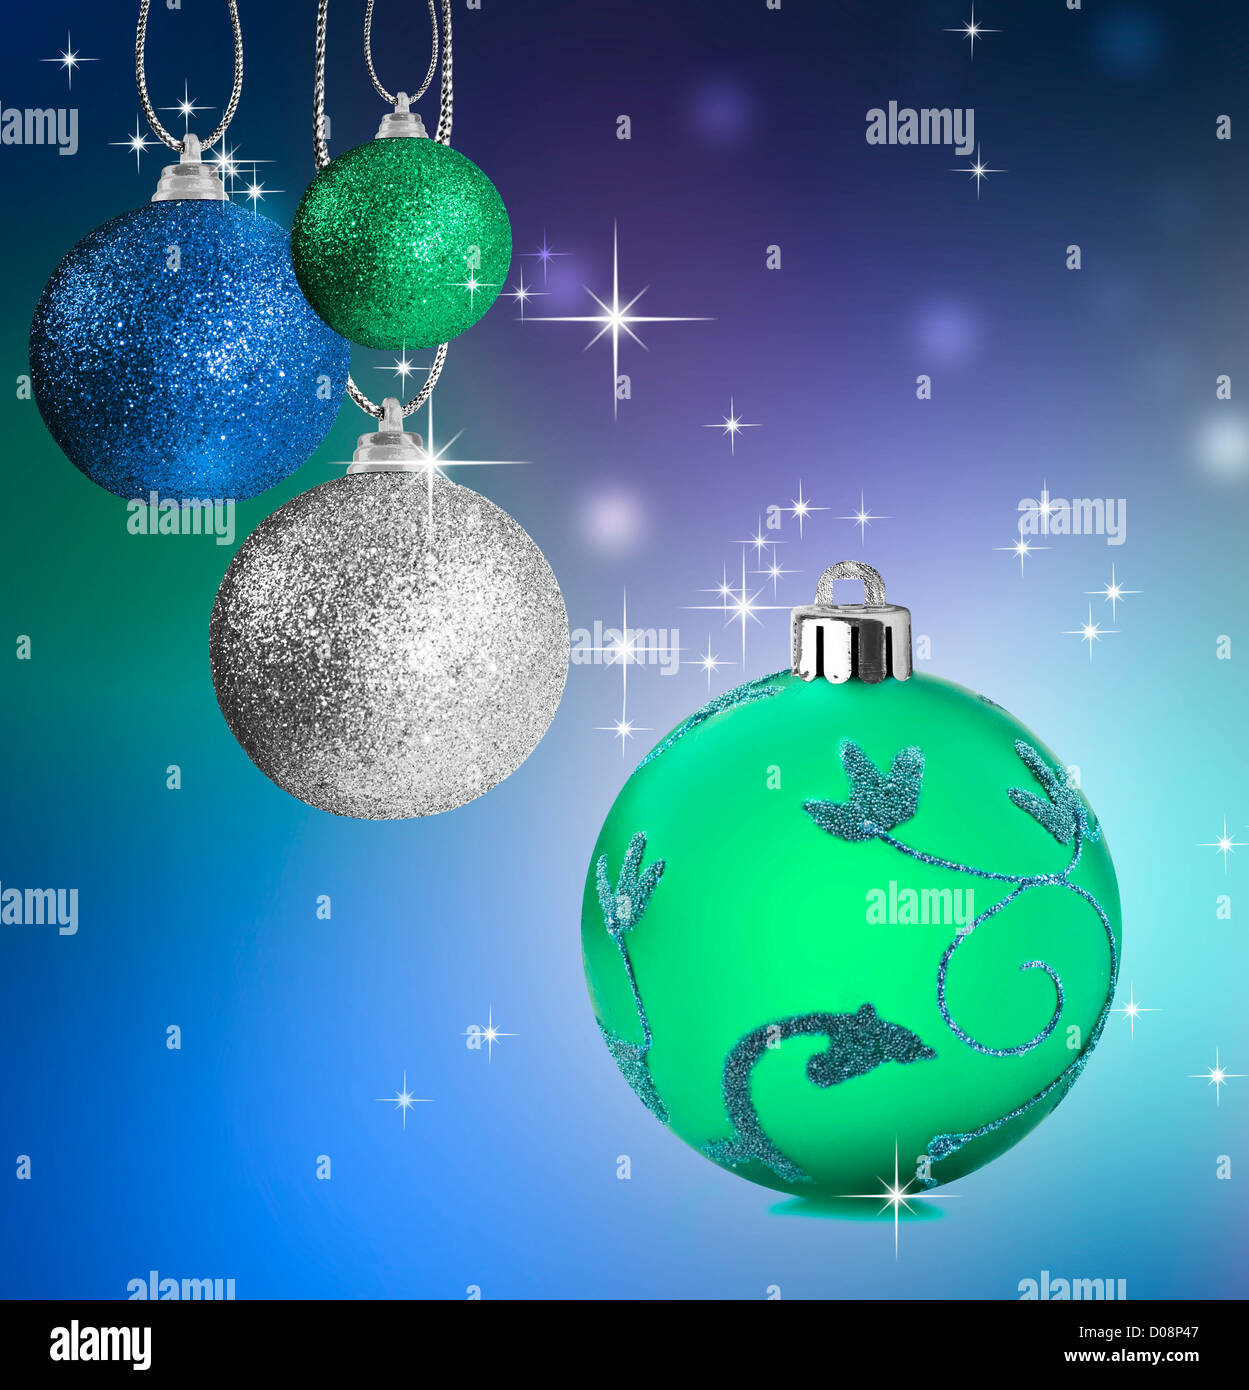 Colorful blue christmas baubles balls stockfotos colorful blue christmas baubles balls bilder - Blaue christbaumkugeln ...